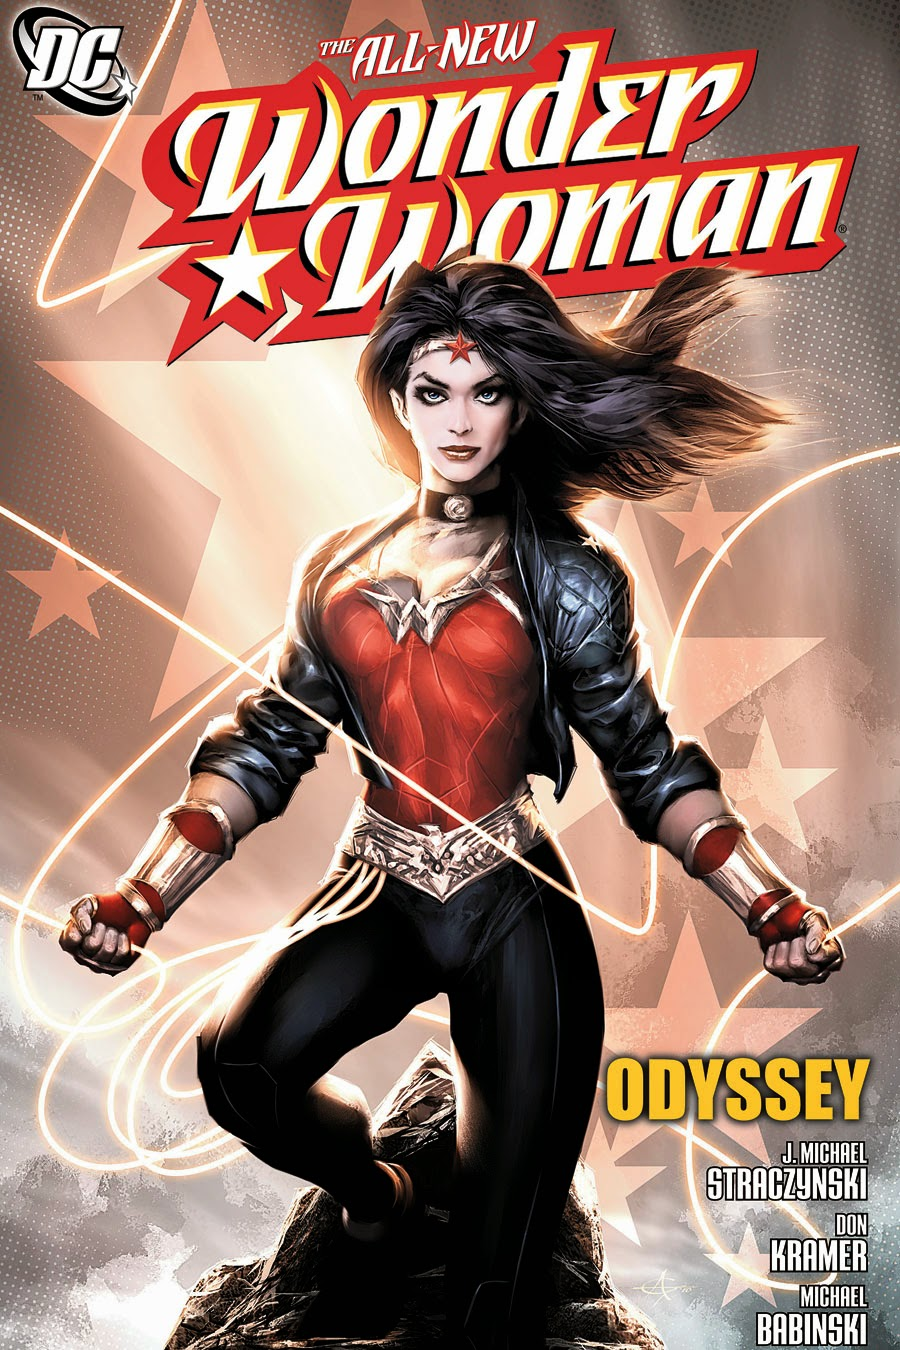 Pants Gal Gadot S Wonder Woman Costume Rumored To Be Based On Odyssey Design